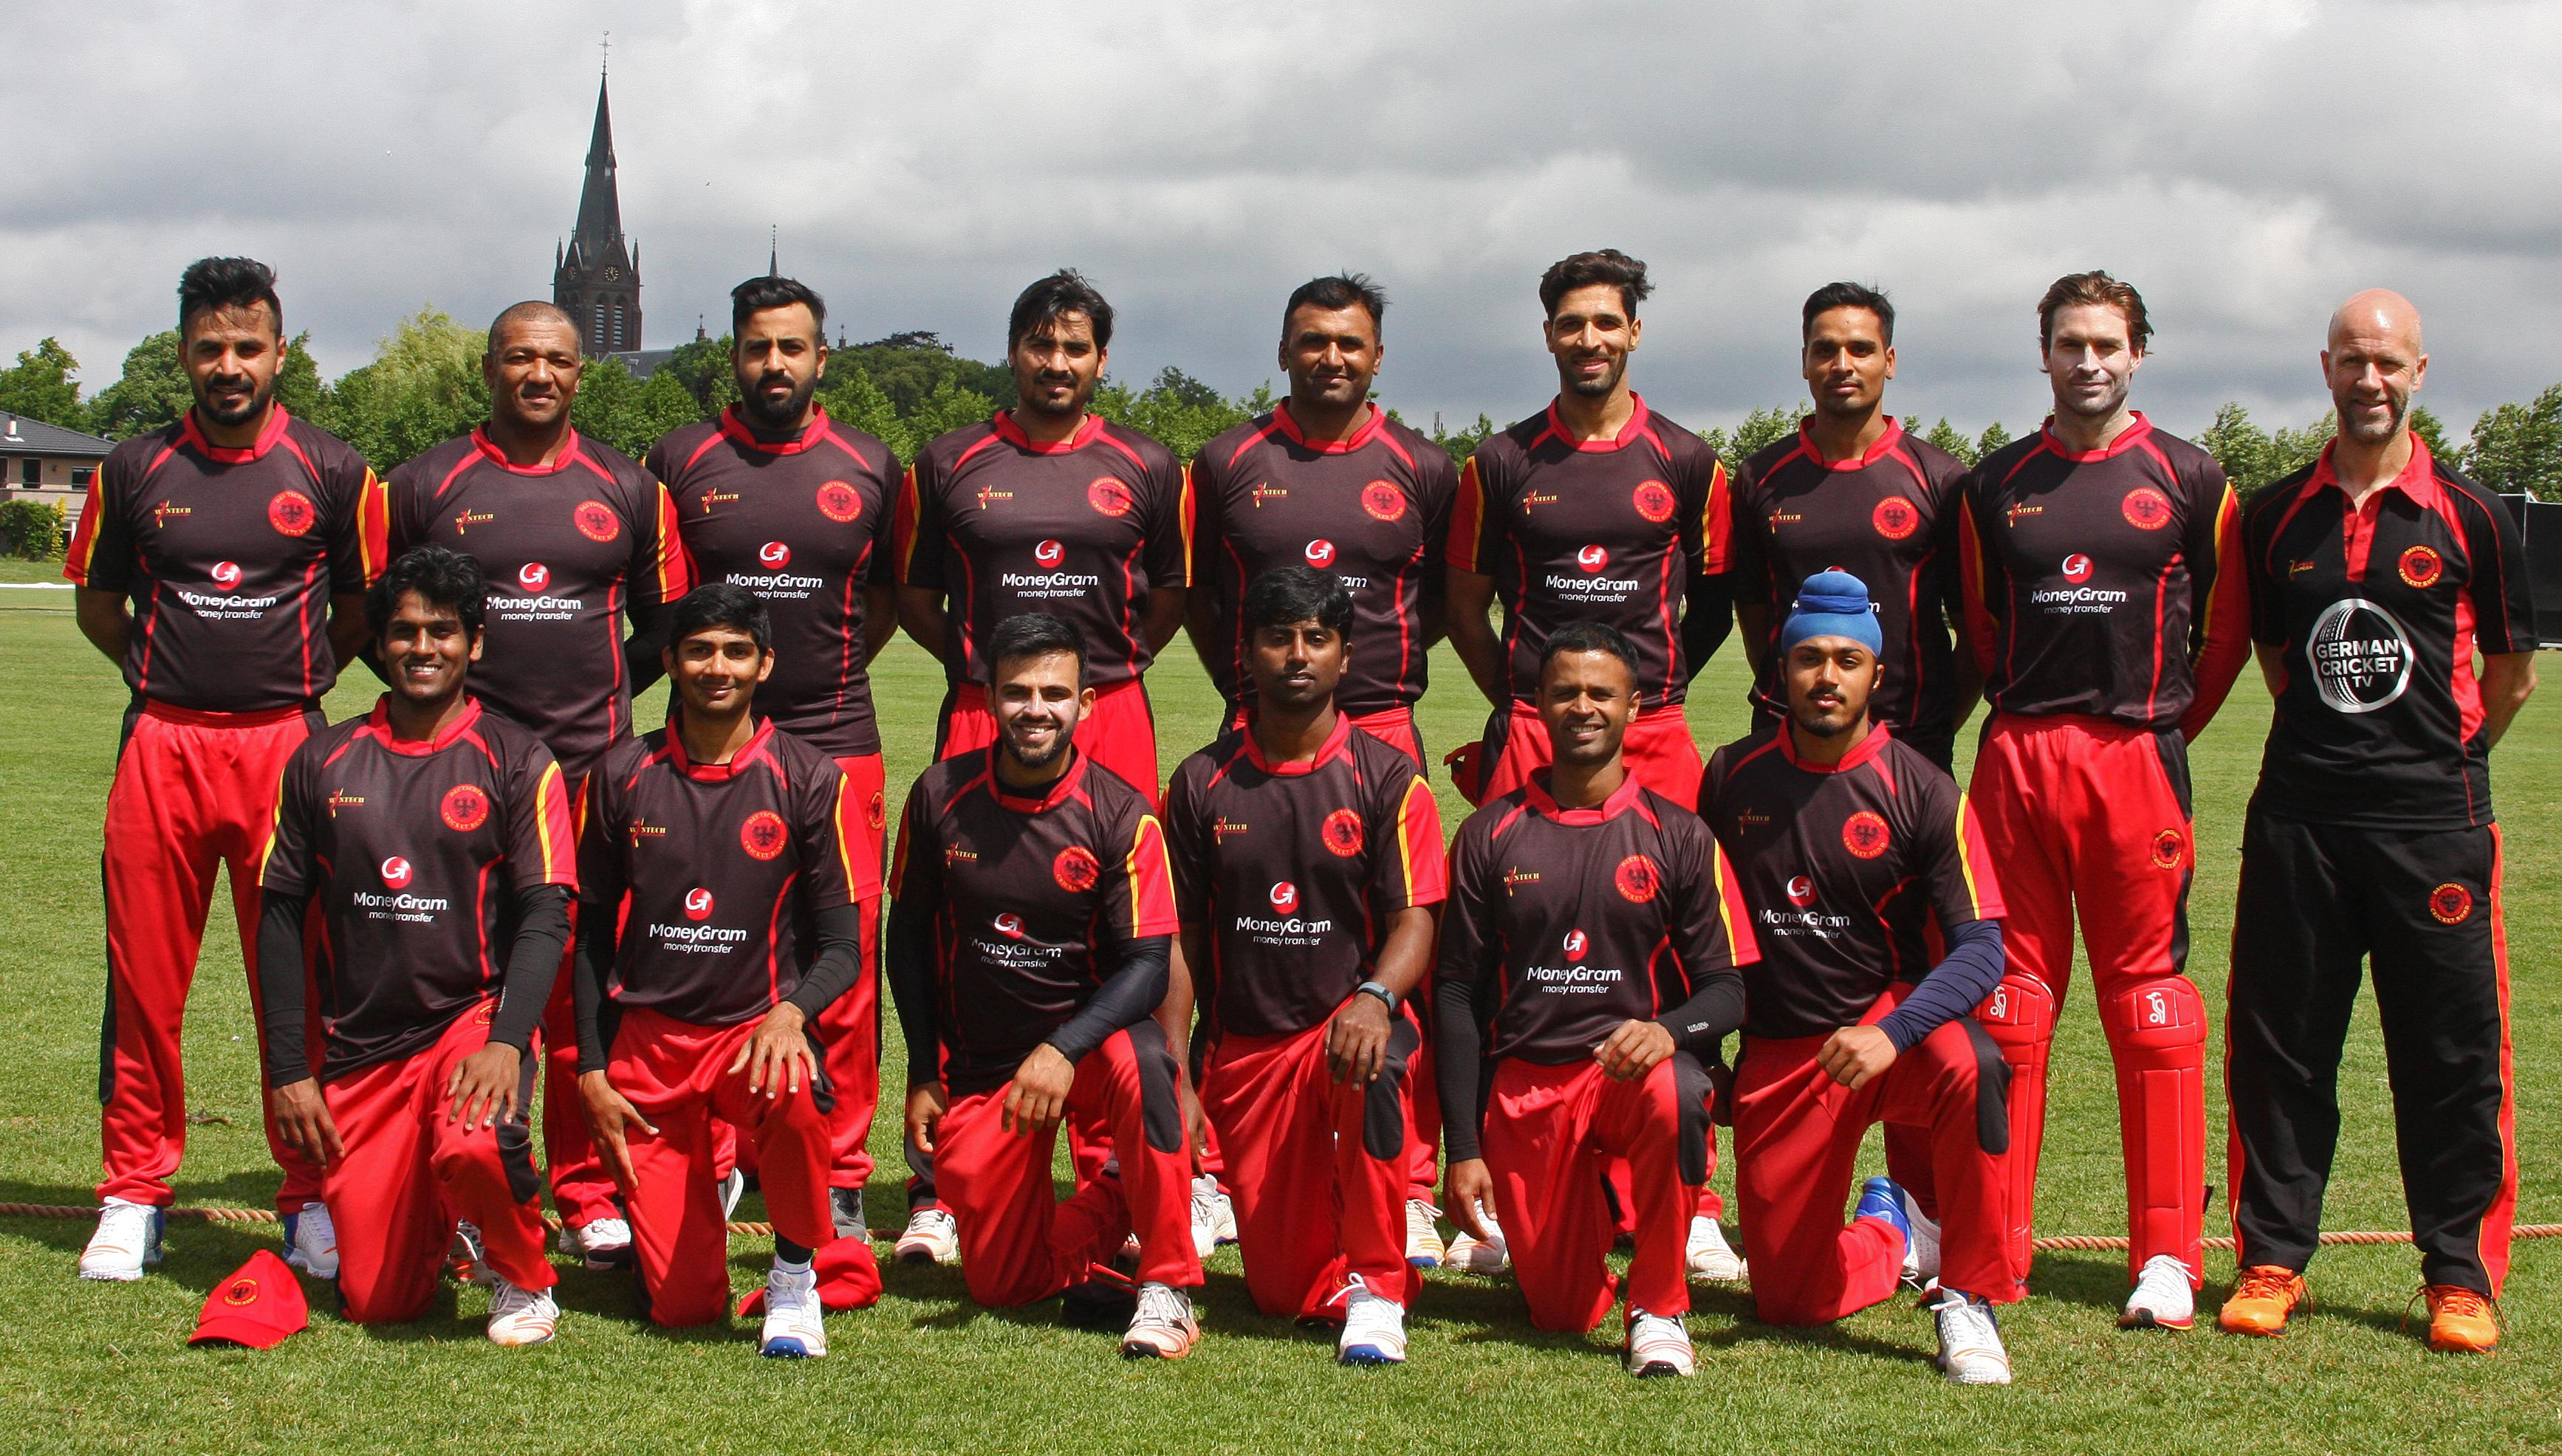 Squads arrive in Netherlands ahead of ICC World Cricket ...